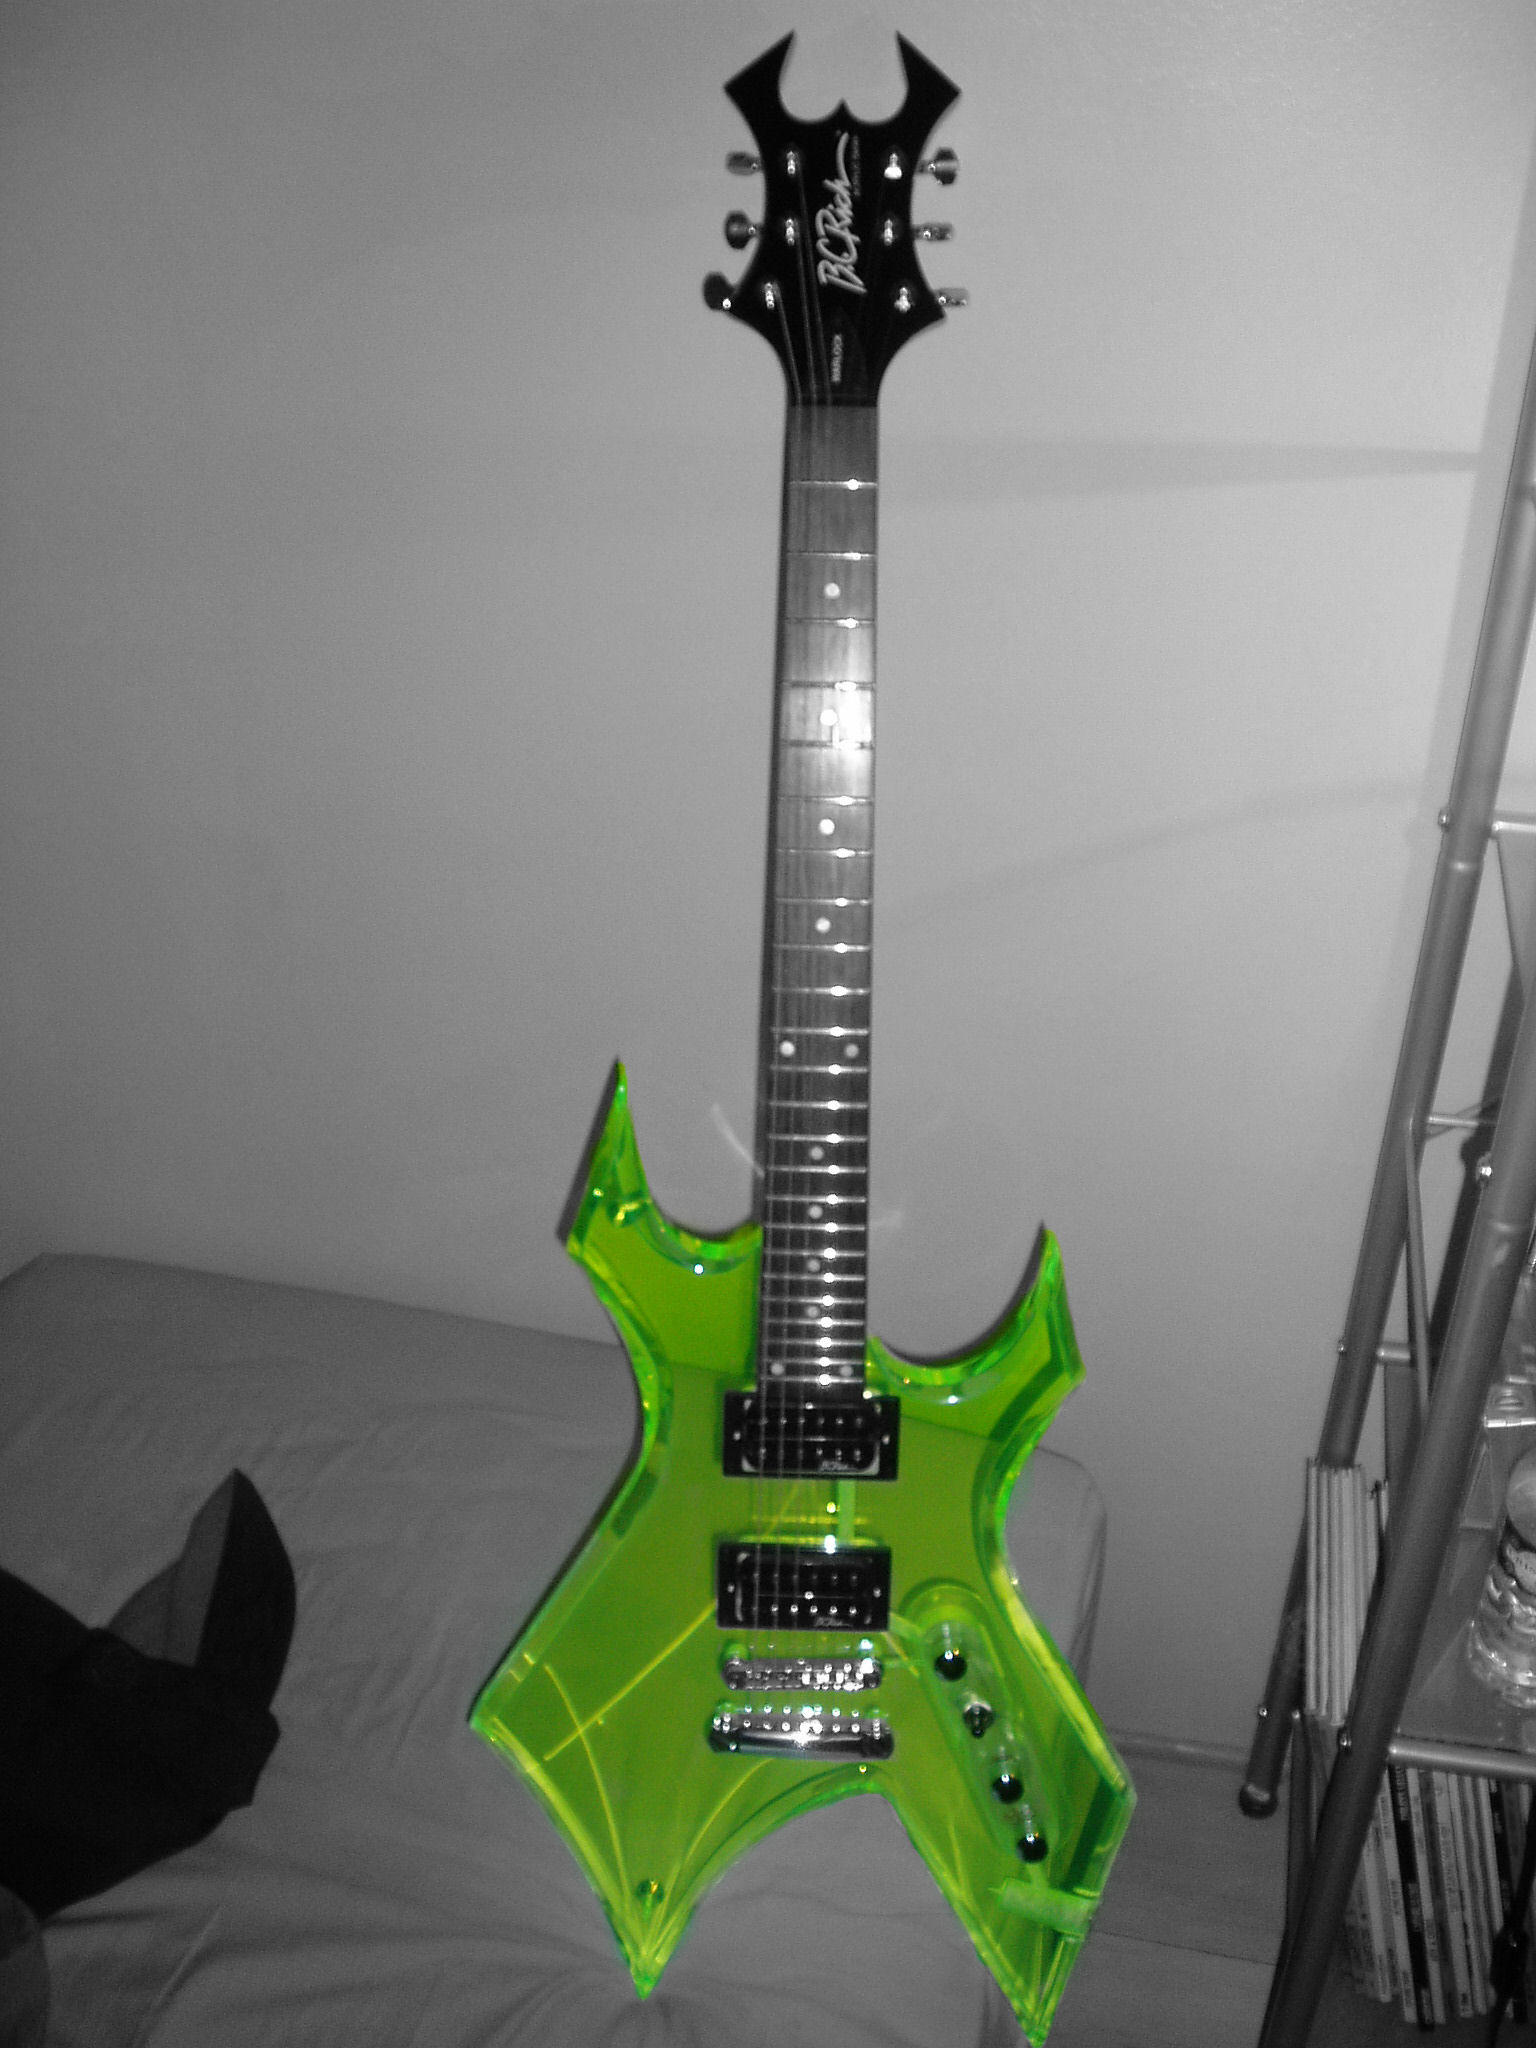 bc rich guitar by youyoune on deviantart. Black Bedroom Furniture Sets. Home Design Ideas